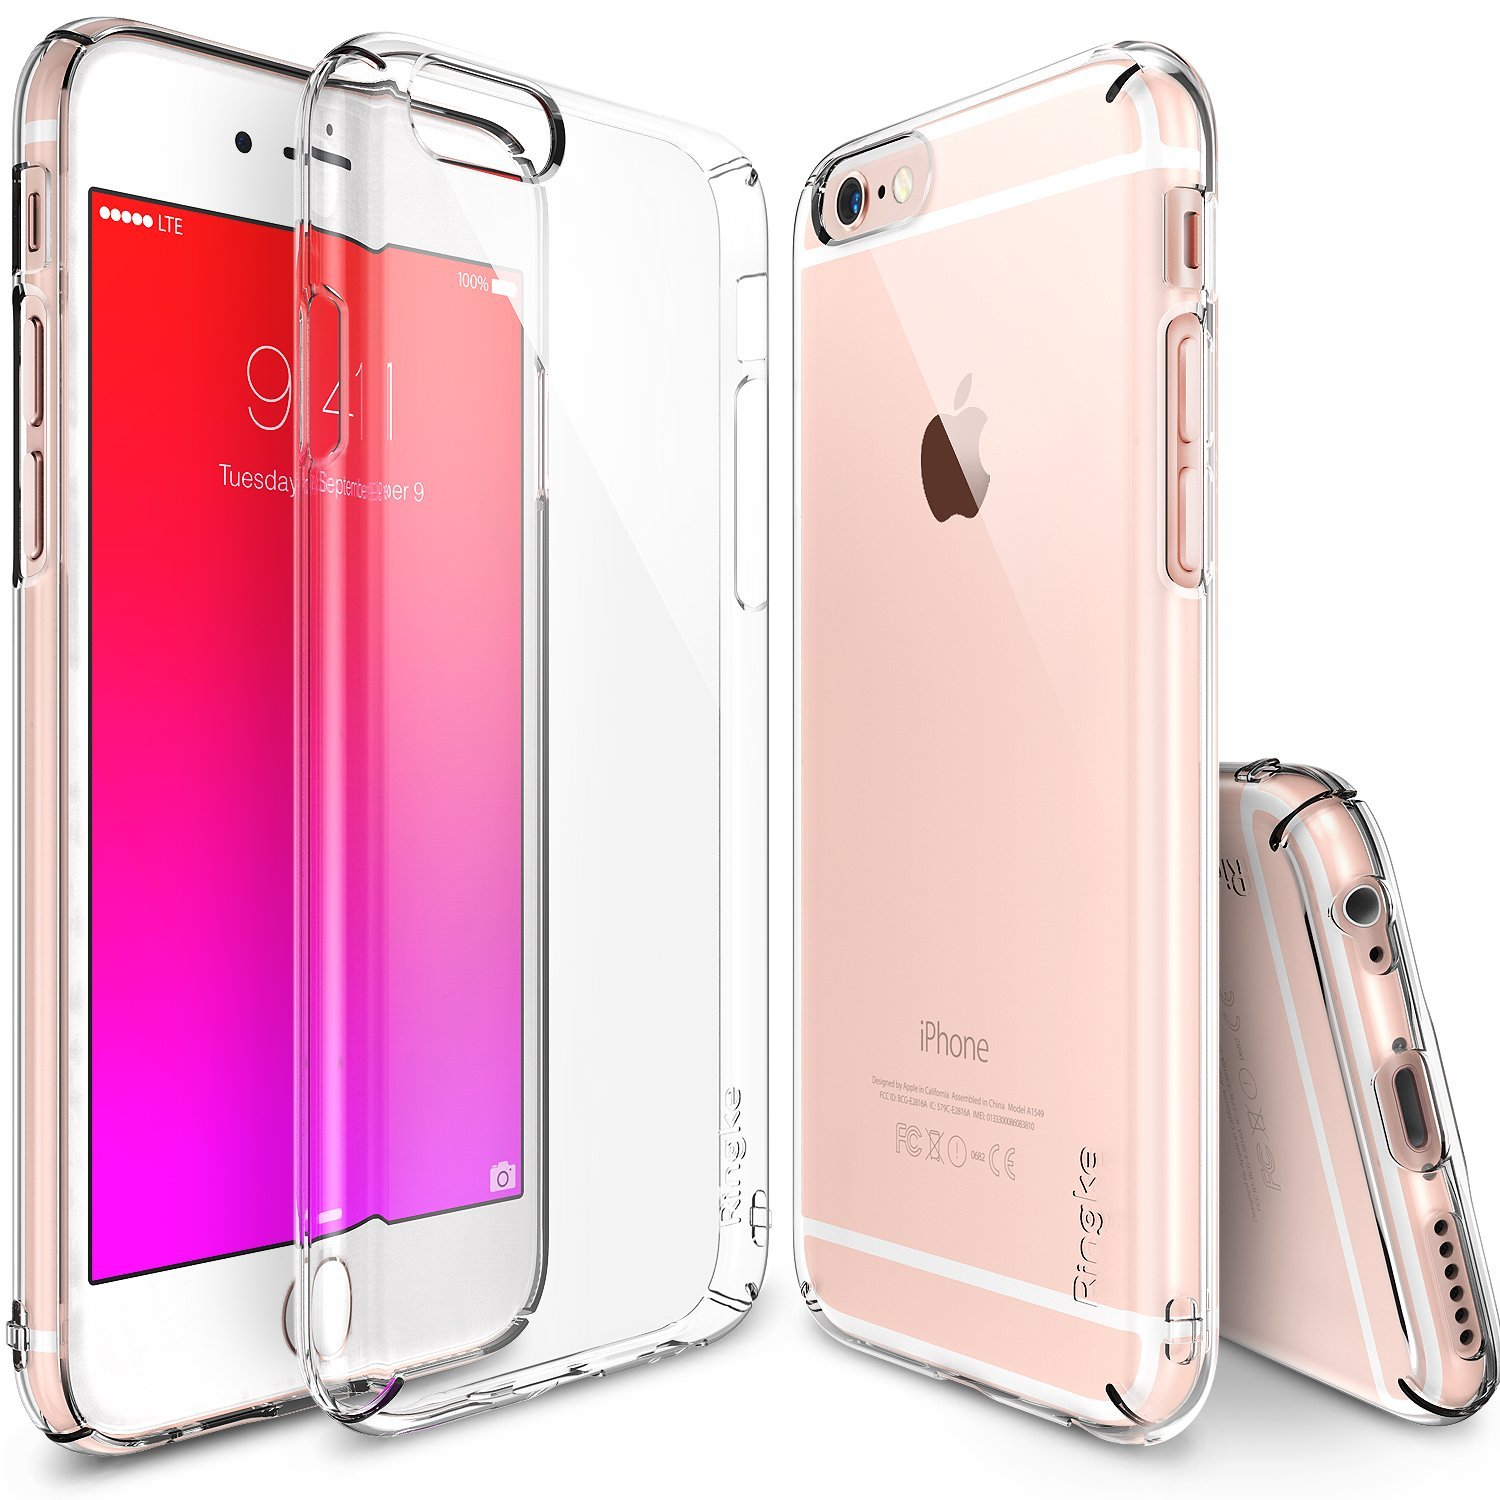 Apple iPhone 6S Case, Ringke [Clear] SLIM Series Slim & Protective Crystal Glossy Snap-on Hard Polycarbonate Plastic Case Cover